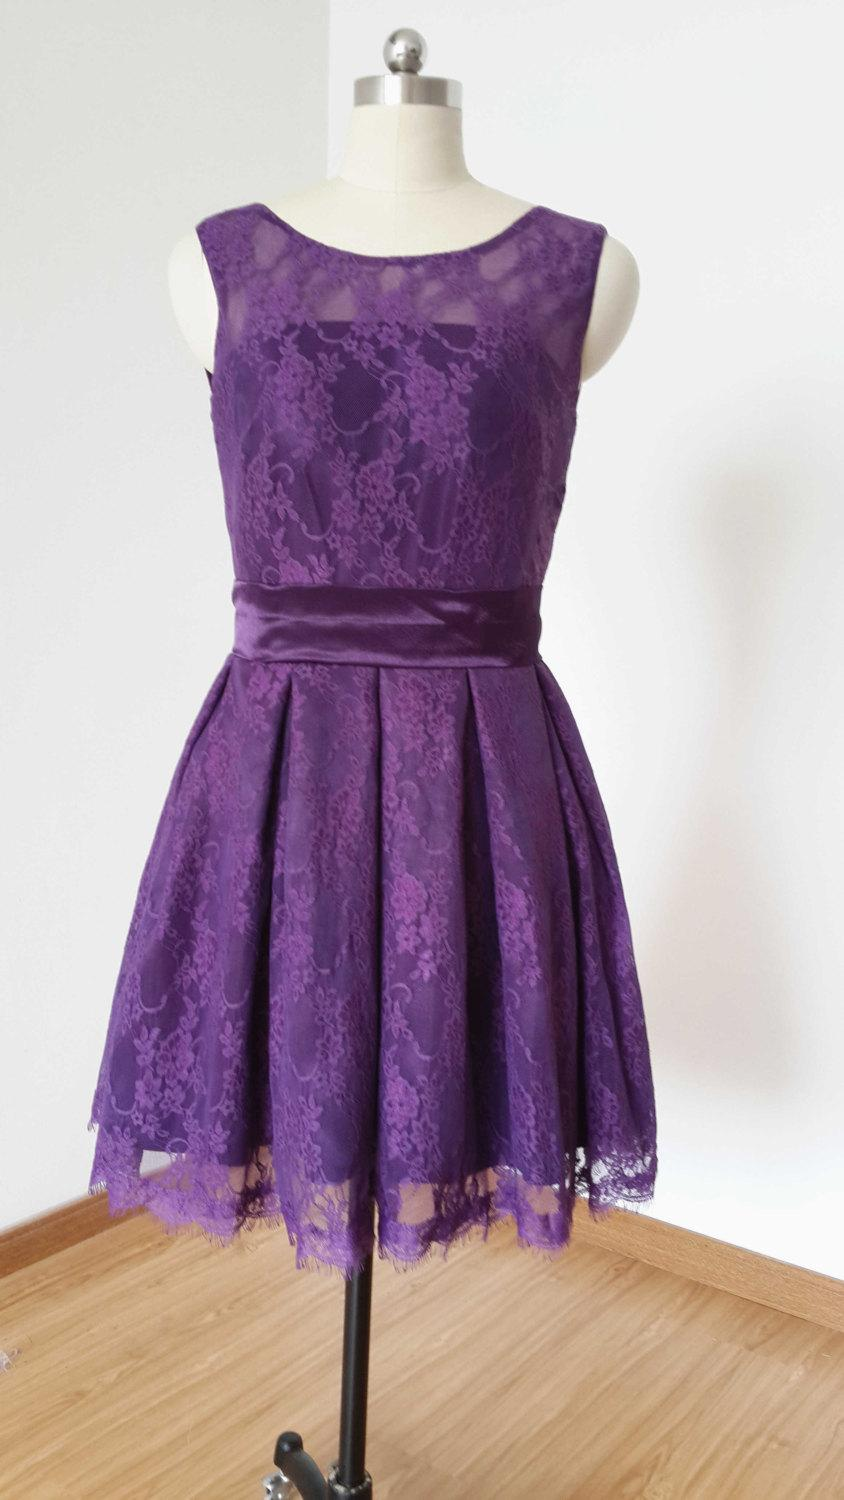 Boda - 2015 A-line Dark Purple Lace Short Bridesmaid Dress